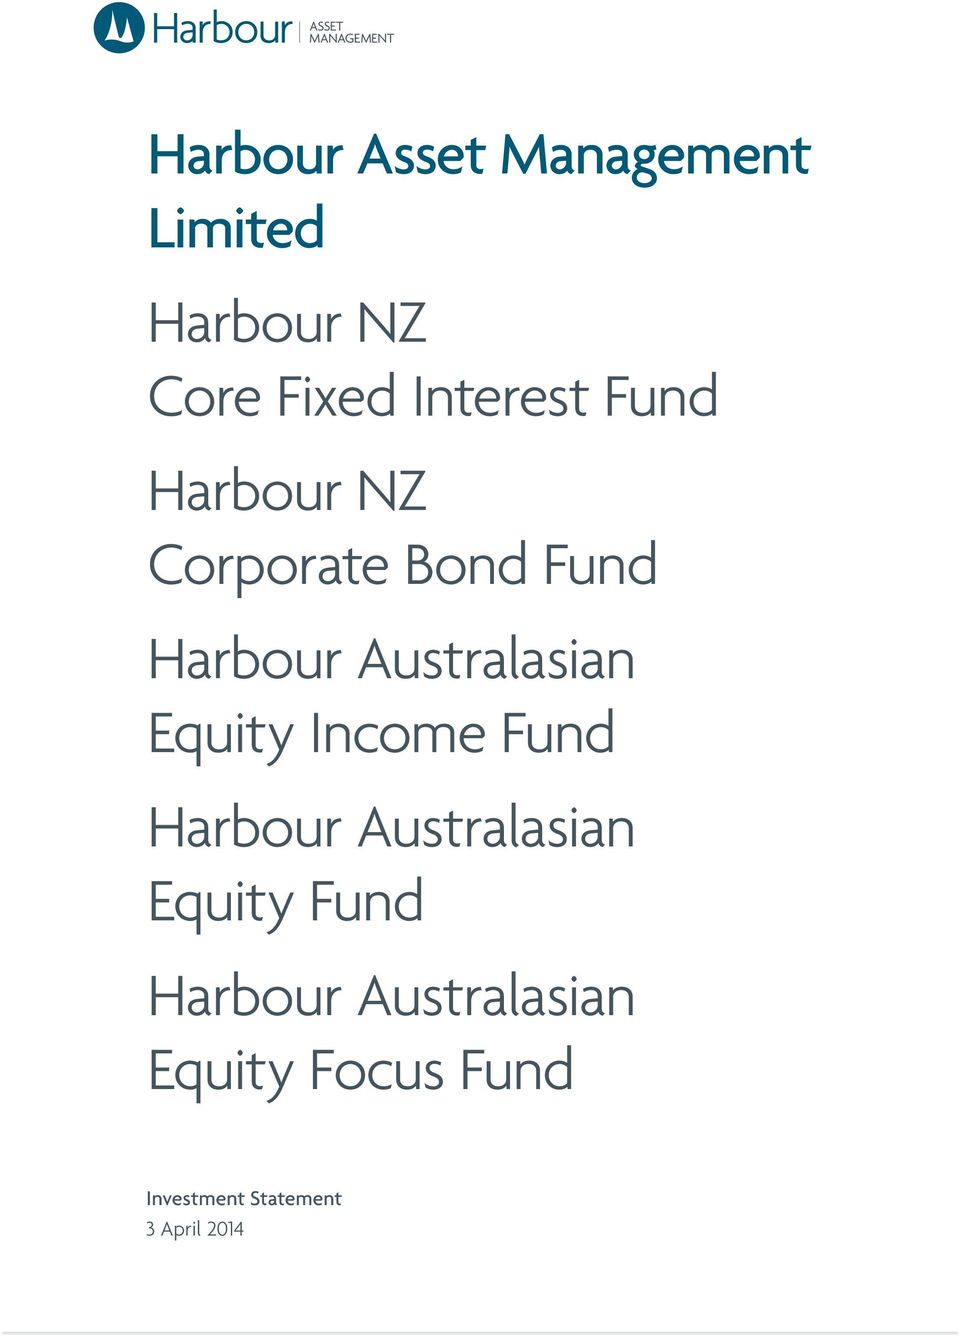 Australasian Equity Income Fund Harbour Australasian Equity